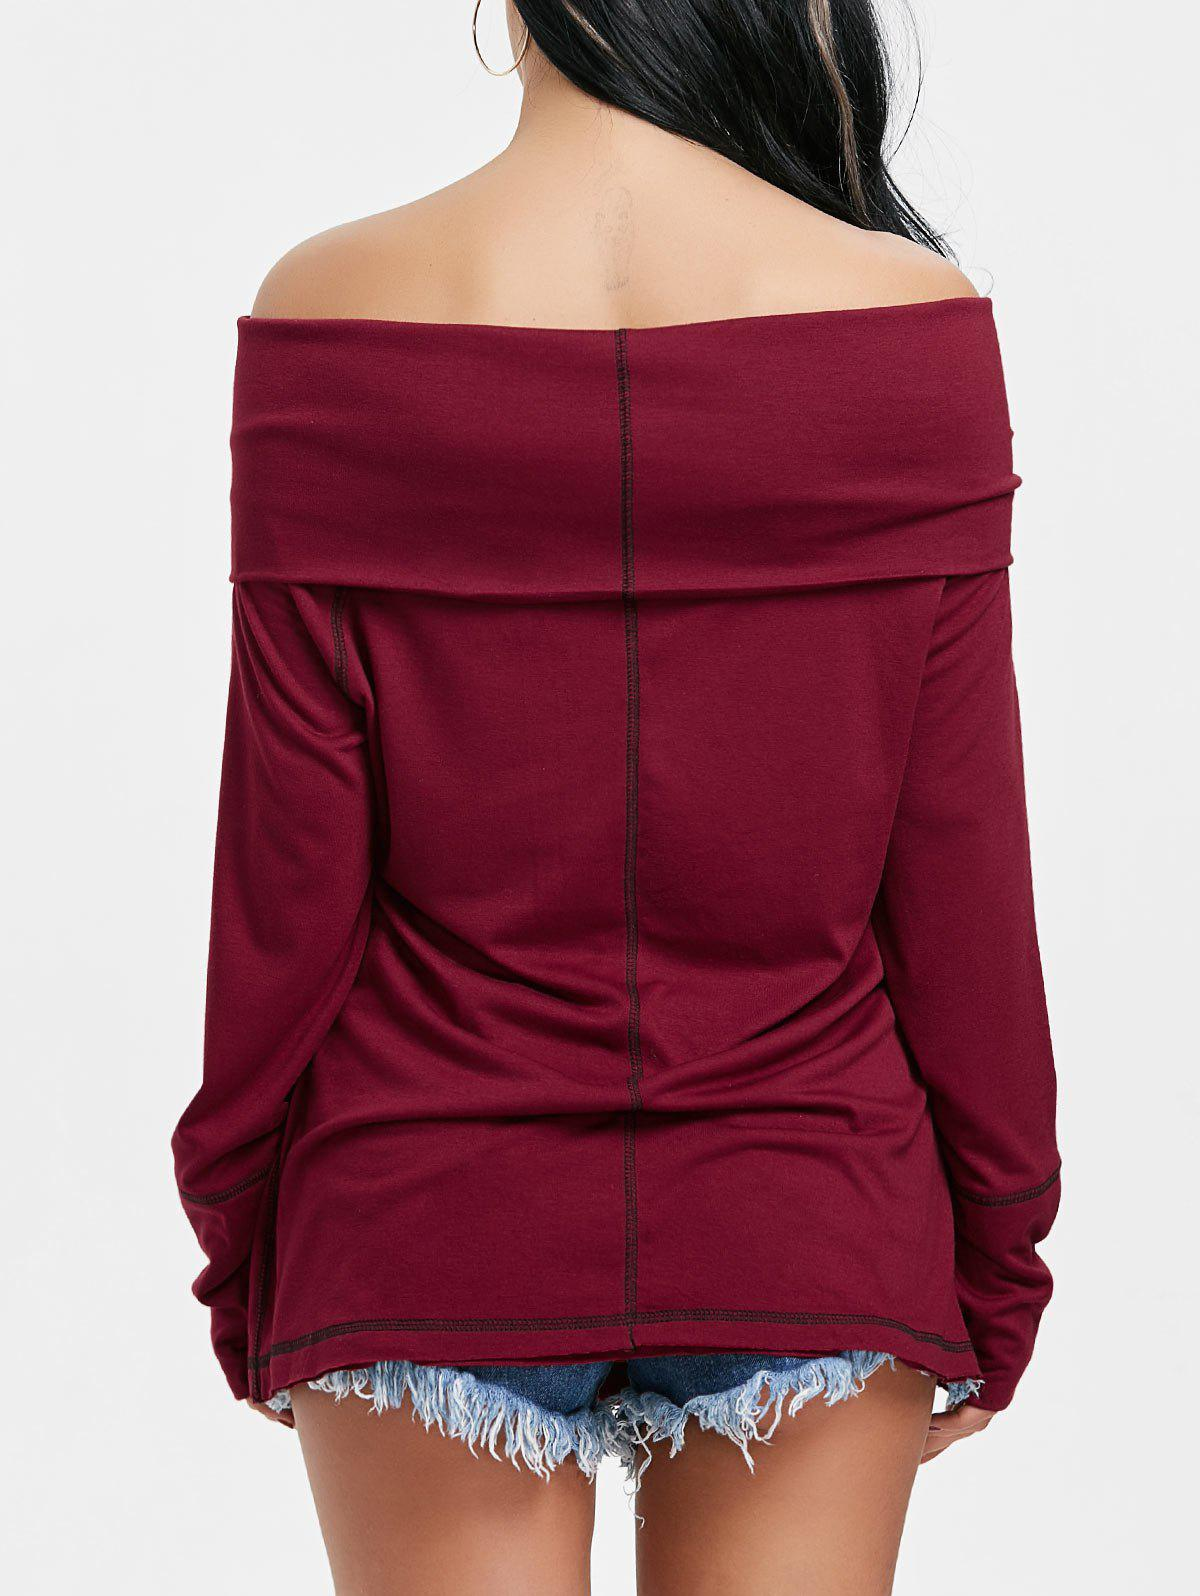 Convertible Off The Shoulder T-shirt - WINE RED XL